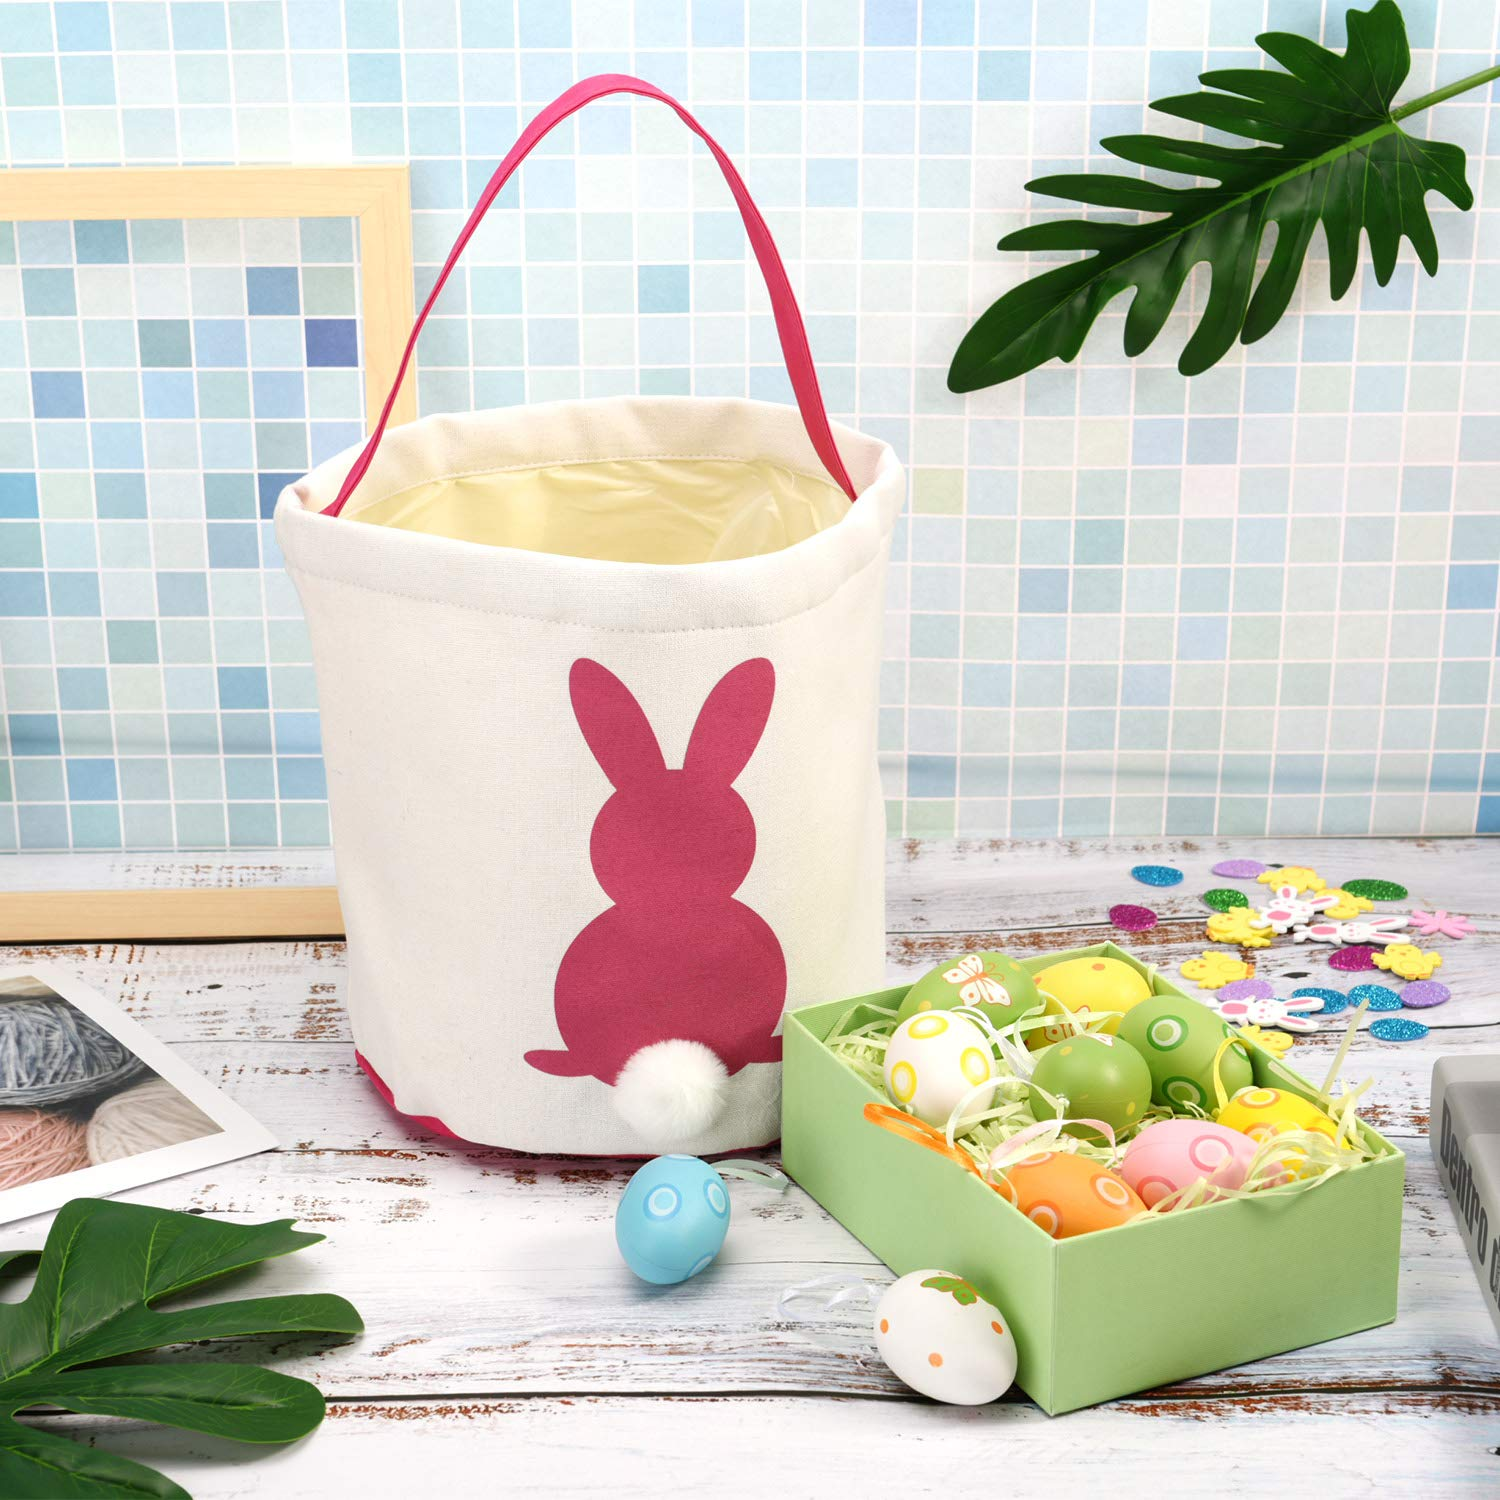 Zhanmai 2 Pieces Easter Bunny Bags Canvas Egg Basket Rabbit Bag for Carrying Eggs Candies and Gifts Pink